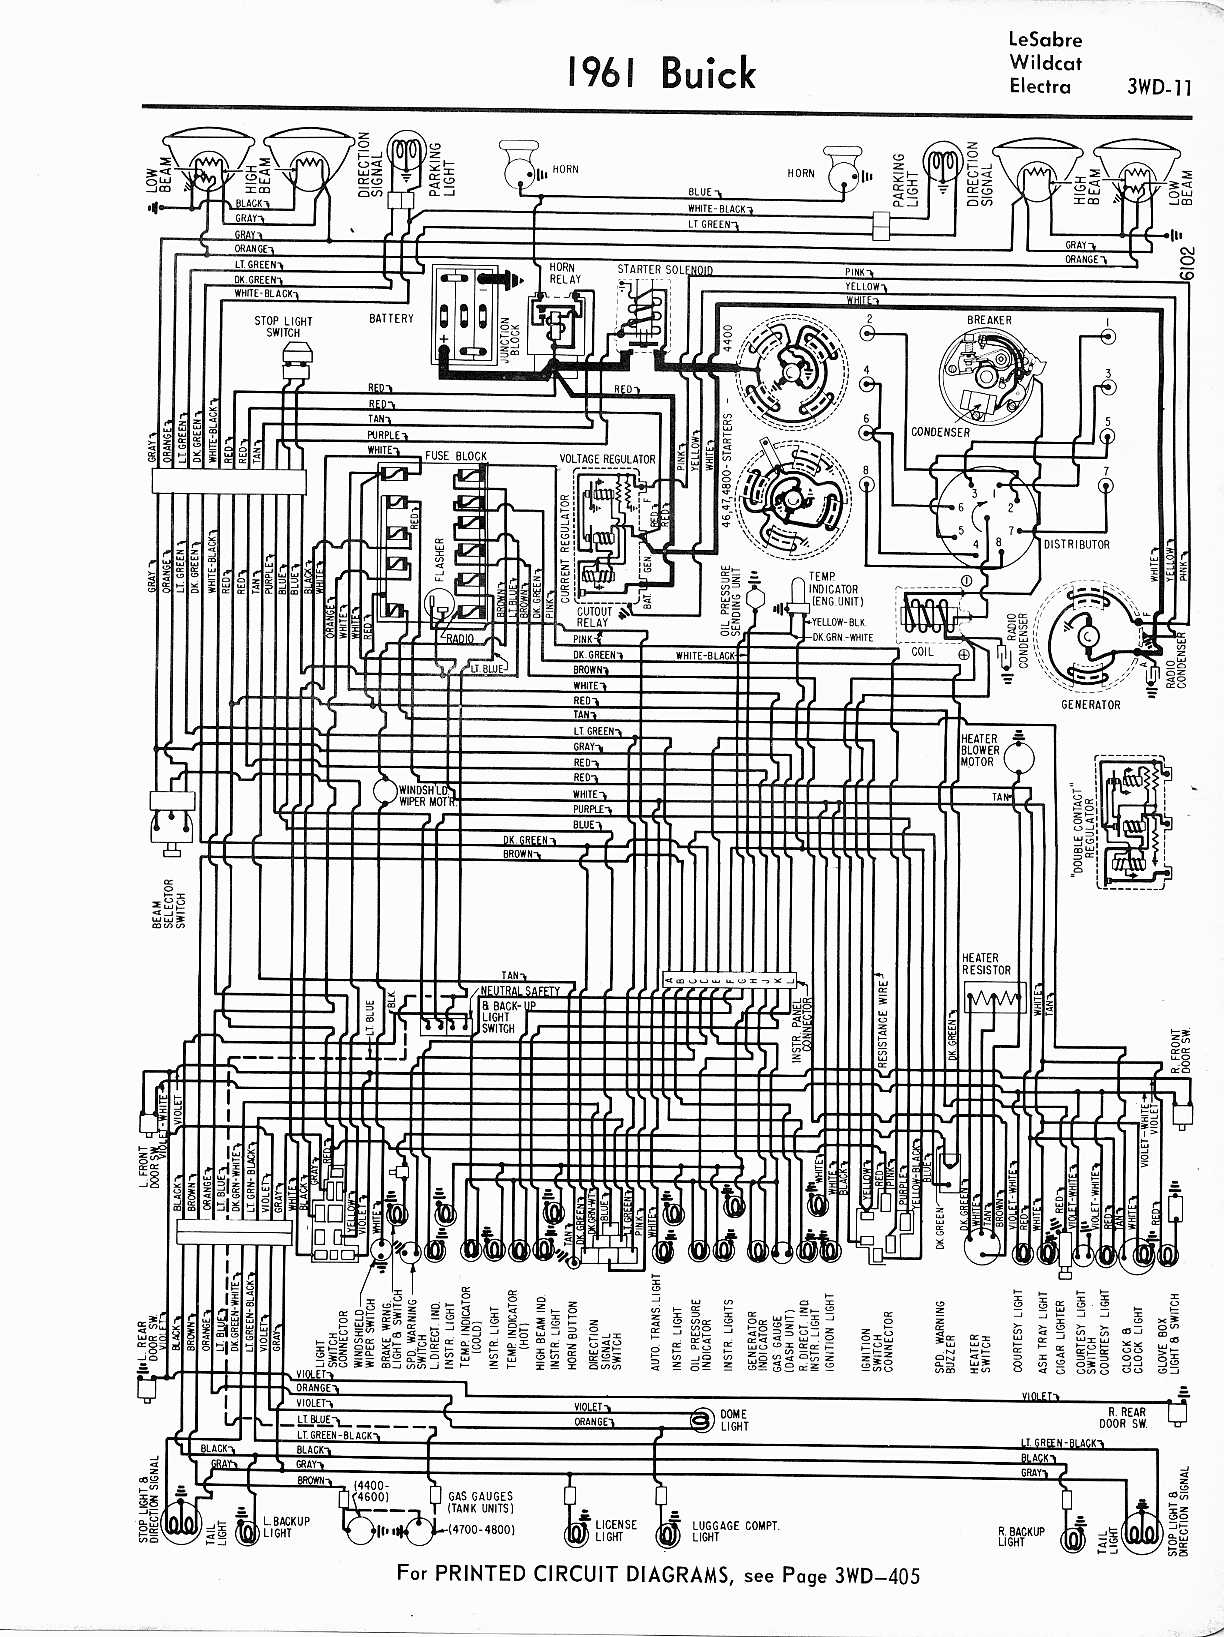 MWireBuic65_3WD 011 buick wiring diagrams 1957 1965 1999 buick century wiring diagram at creativeand.co